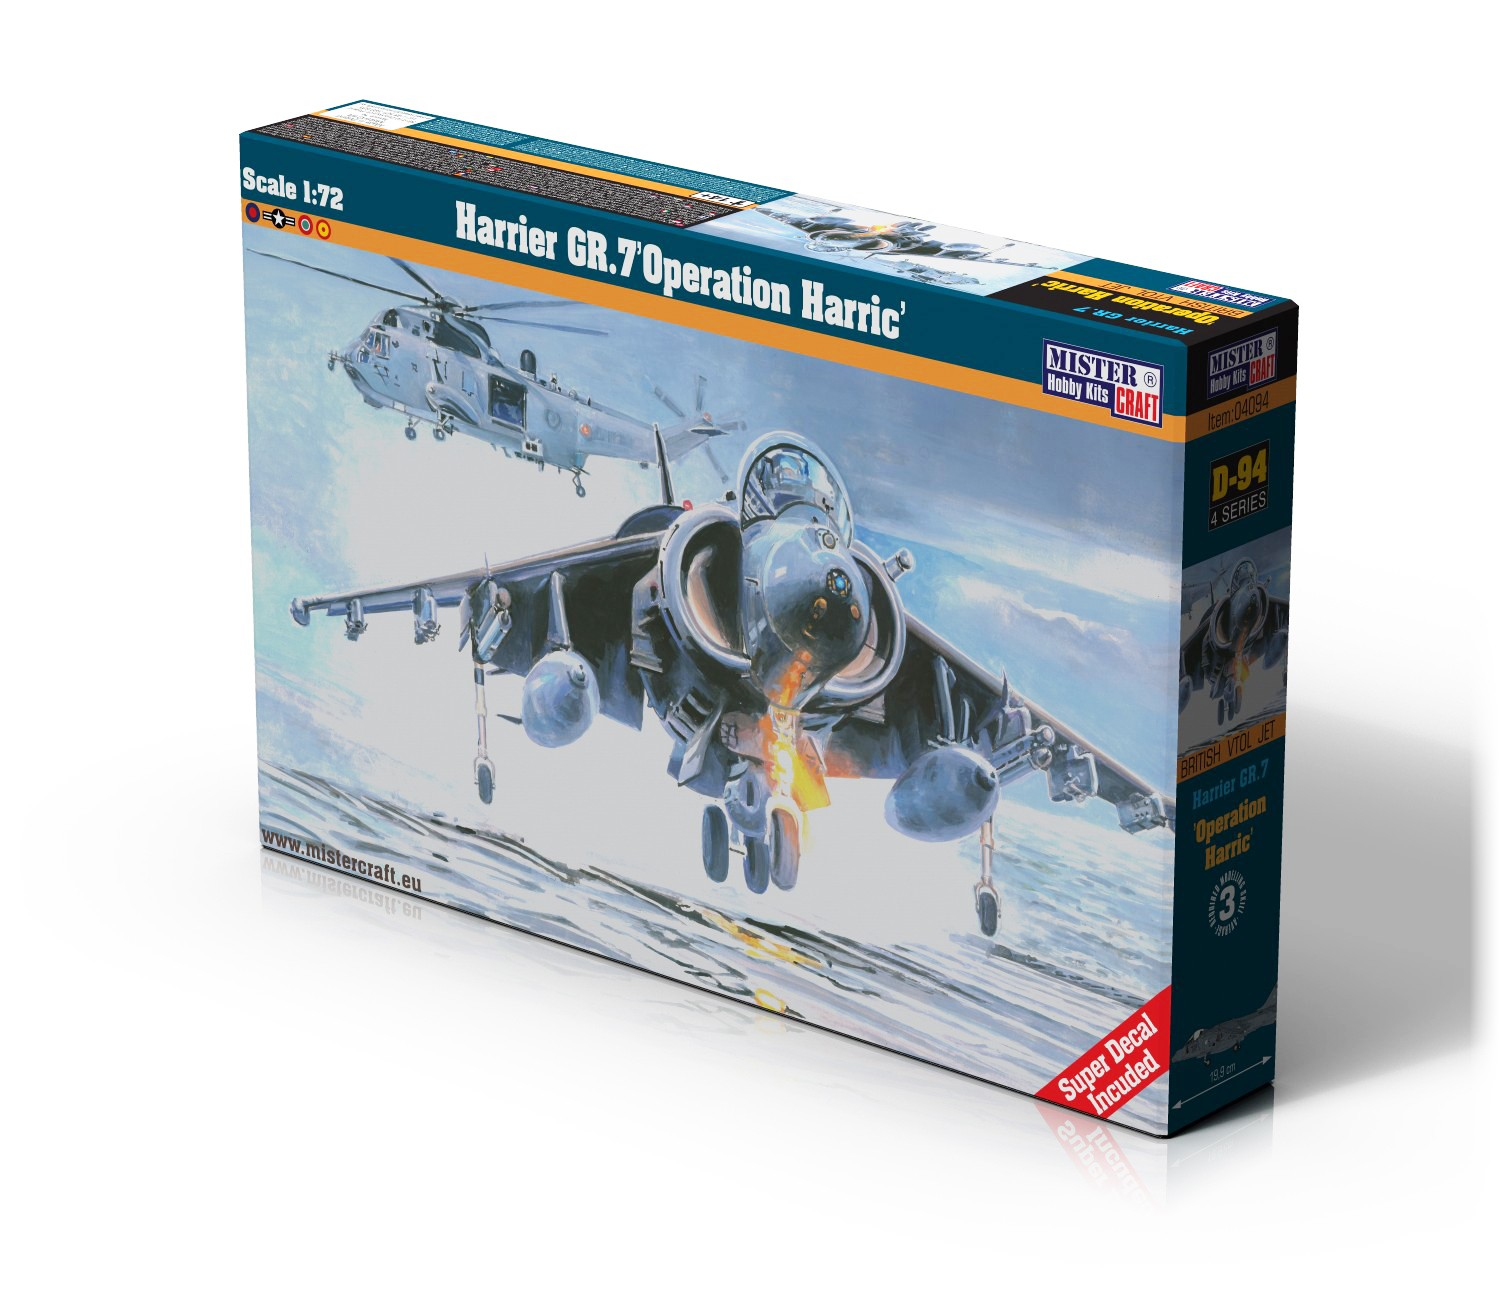 D-94 Harrier GR.7 Operation Harric   1:72